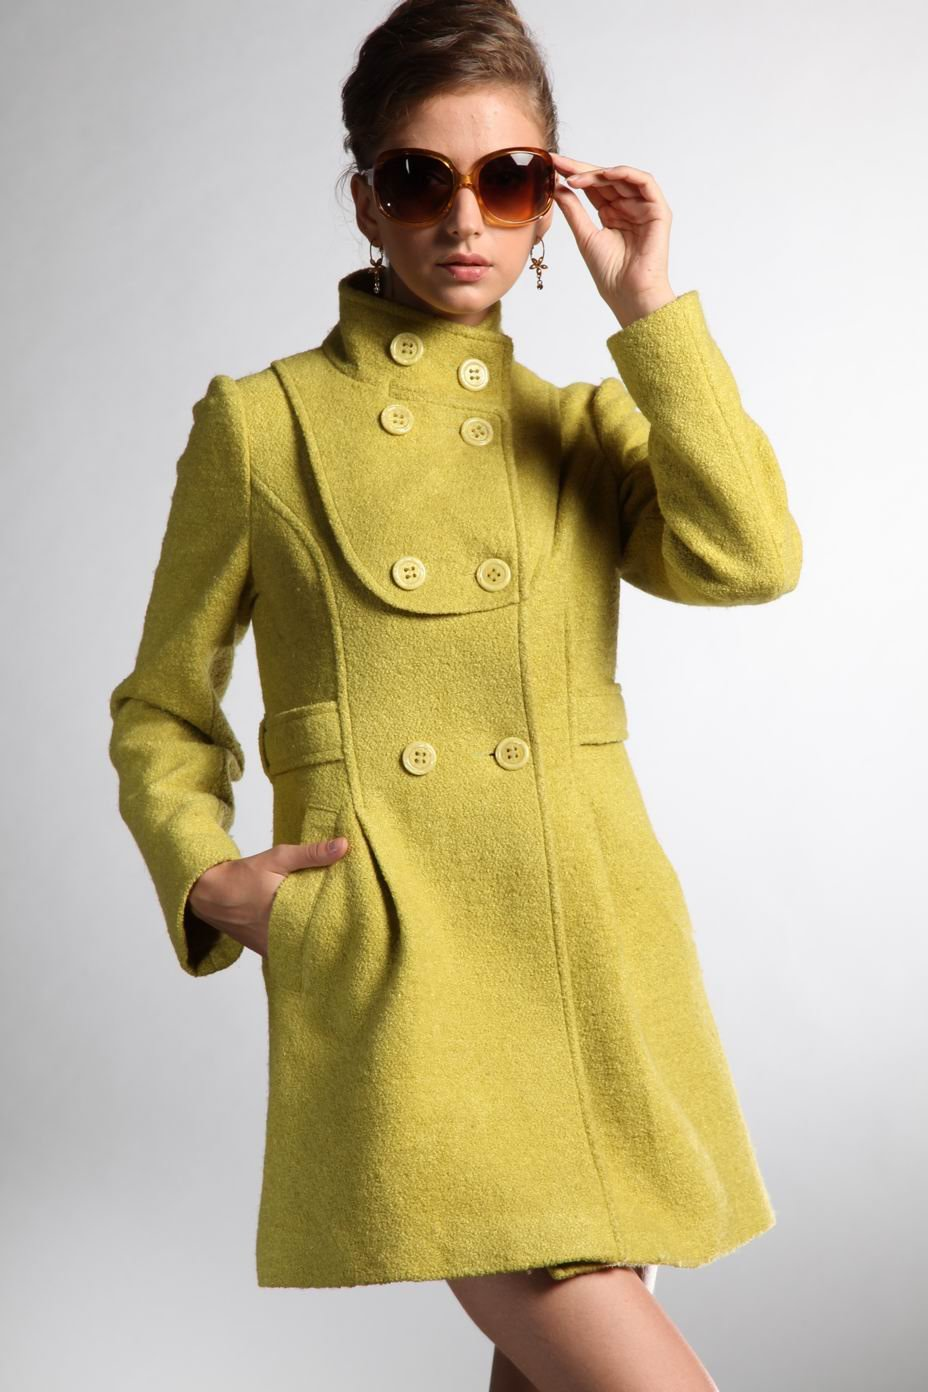 d6f9e52bc BJ769 2011 newest hot sale women s coat (order)-in Wool   Blends from  Women s Clothing on Aliexpress.com